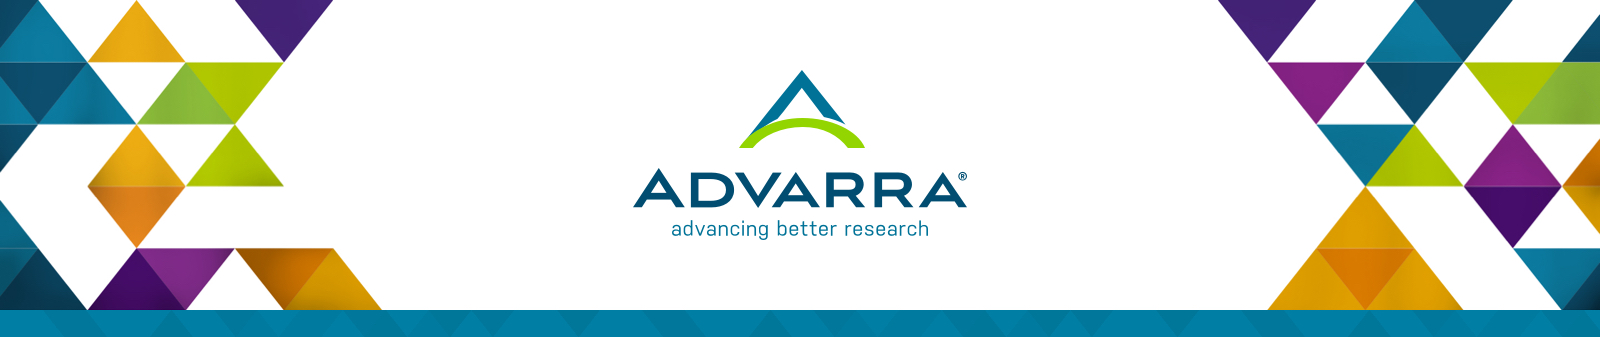 Advarra acquires Kinetiq and Quorum